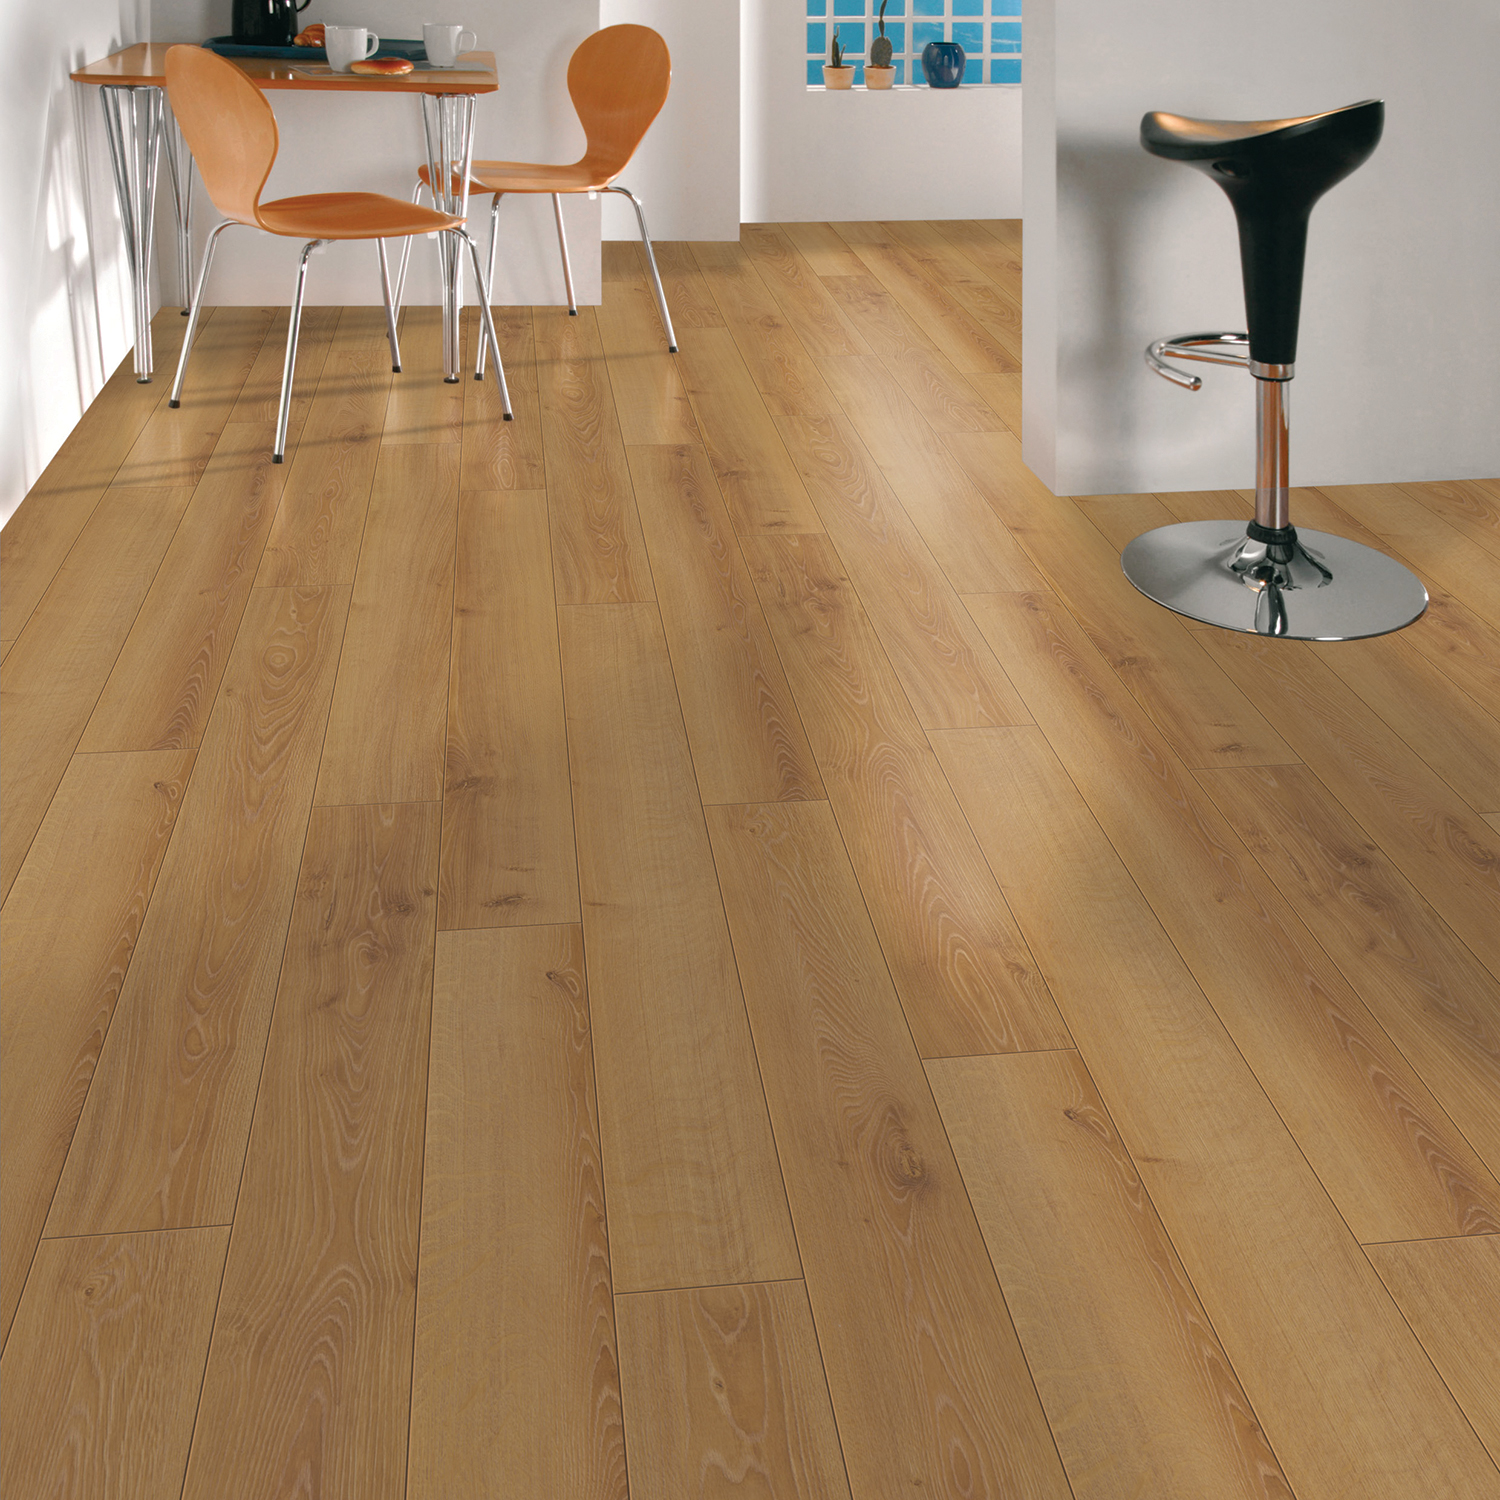 10mm ac5 studio essentials limerick laminate floors for Laminate flooring limerick